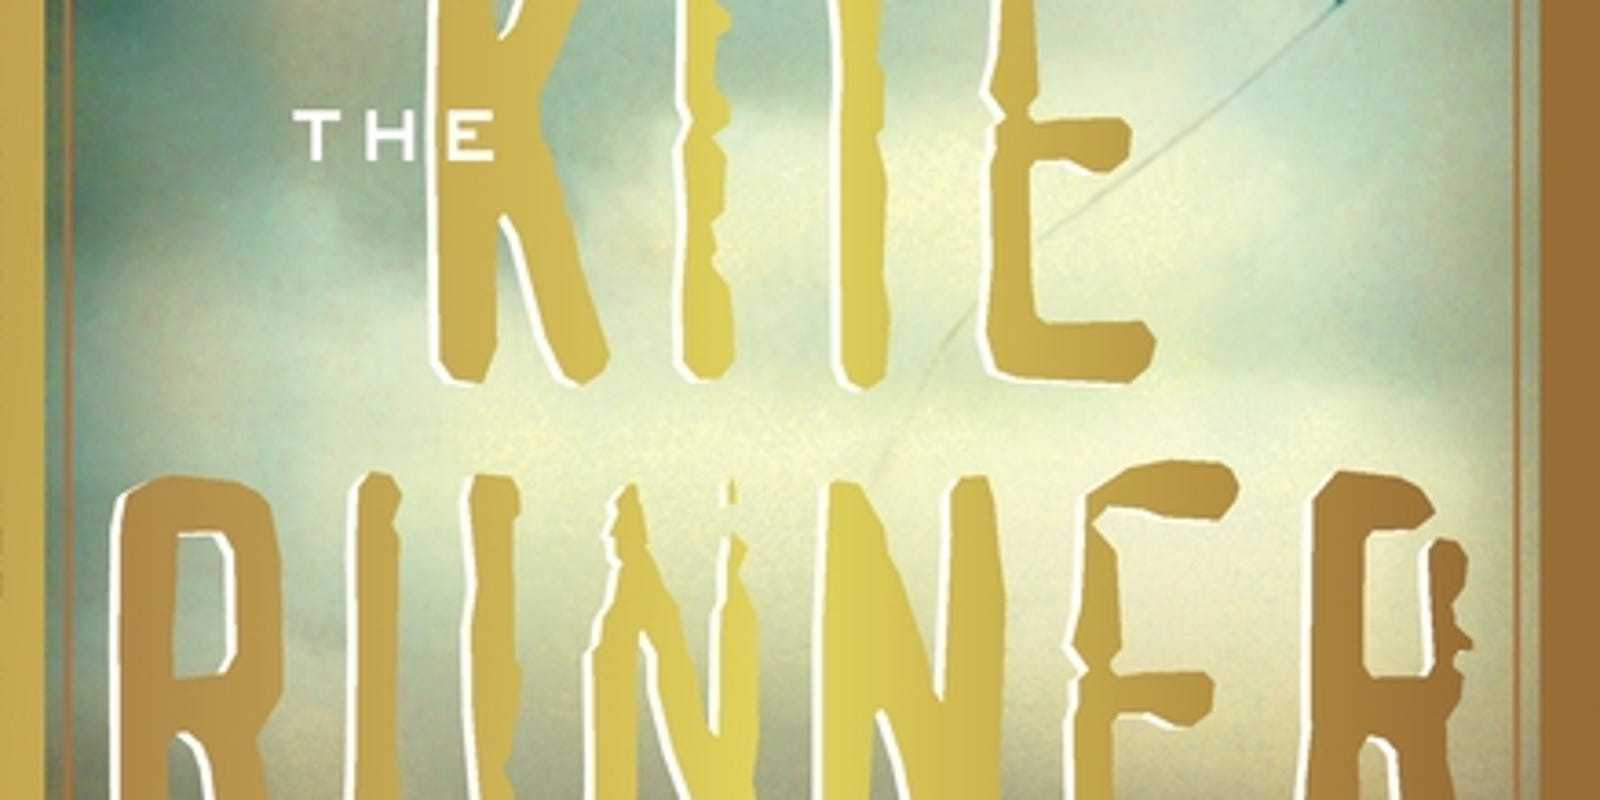 tragedy in the kite runner Find product information, ratings and reviews for kite runner (hardcover)  their  intertwined lives, and their fates, reflect the eventual tragedy of the world.